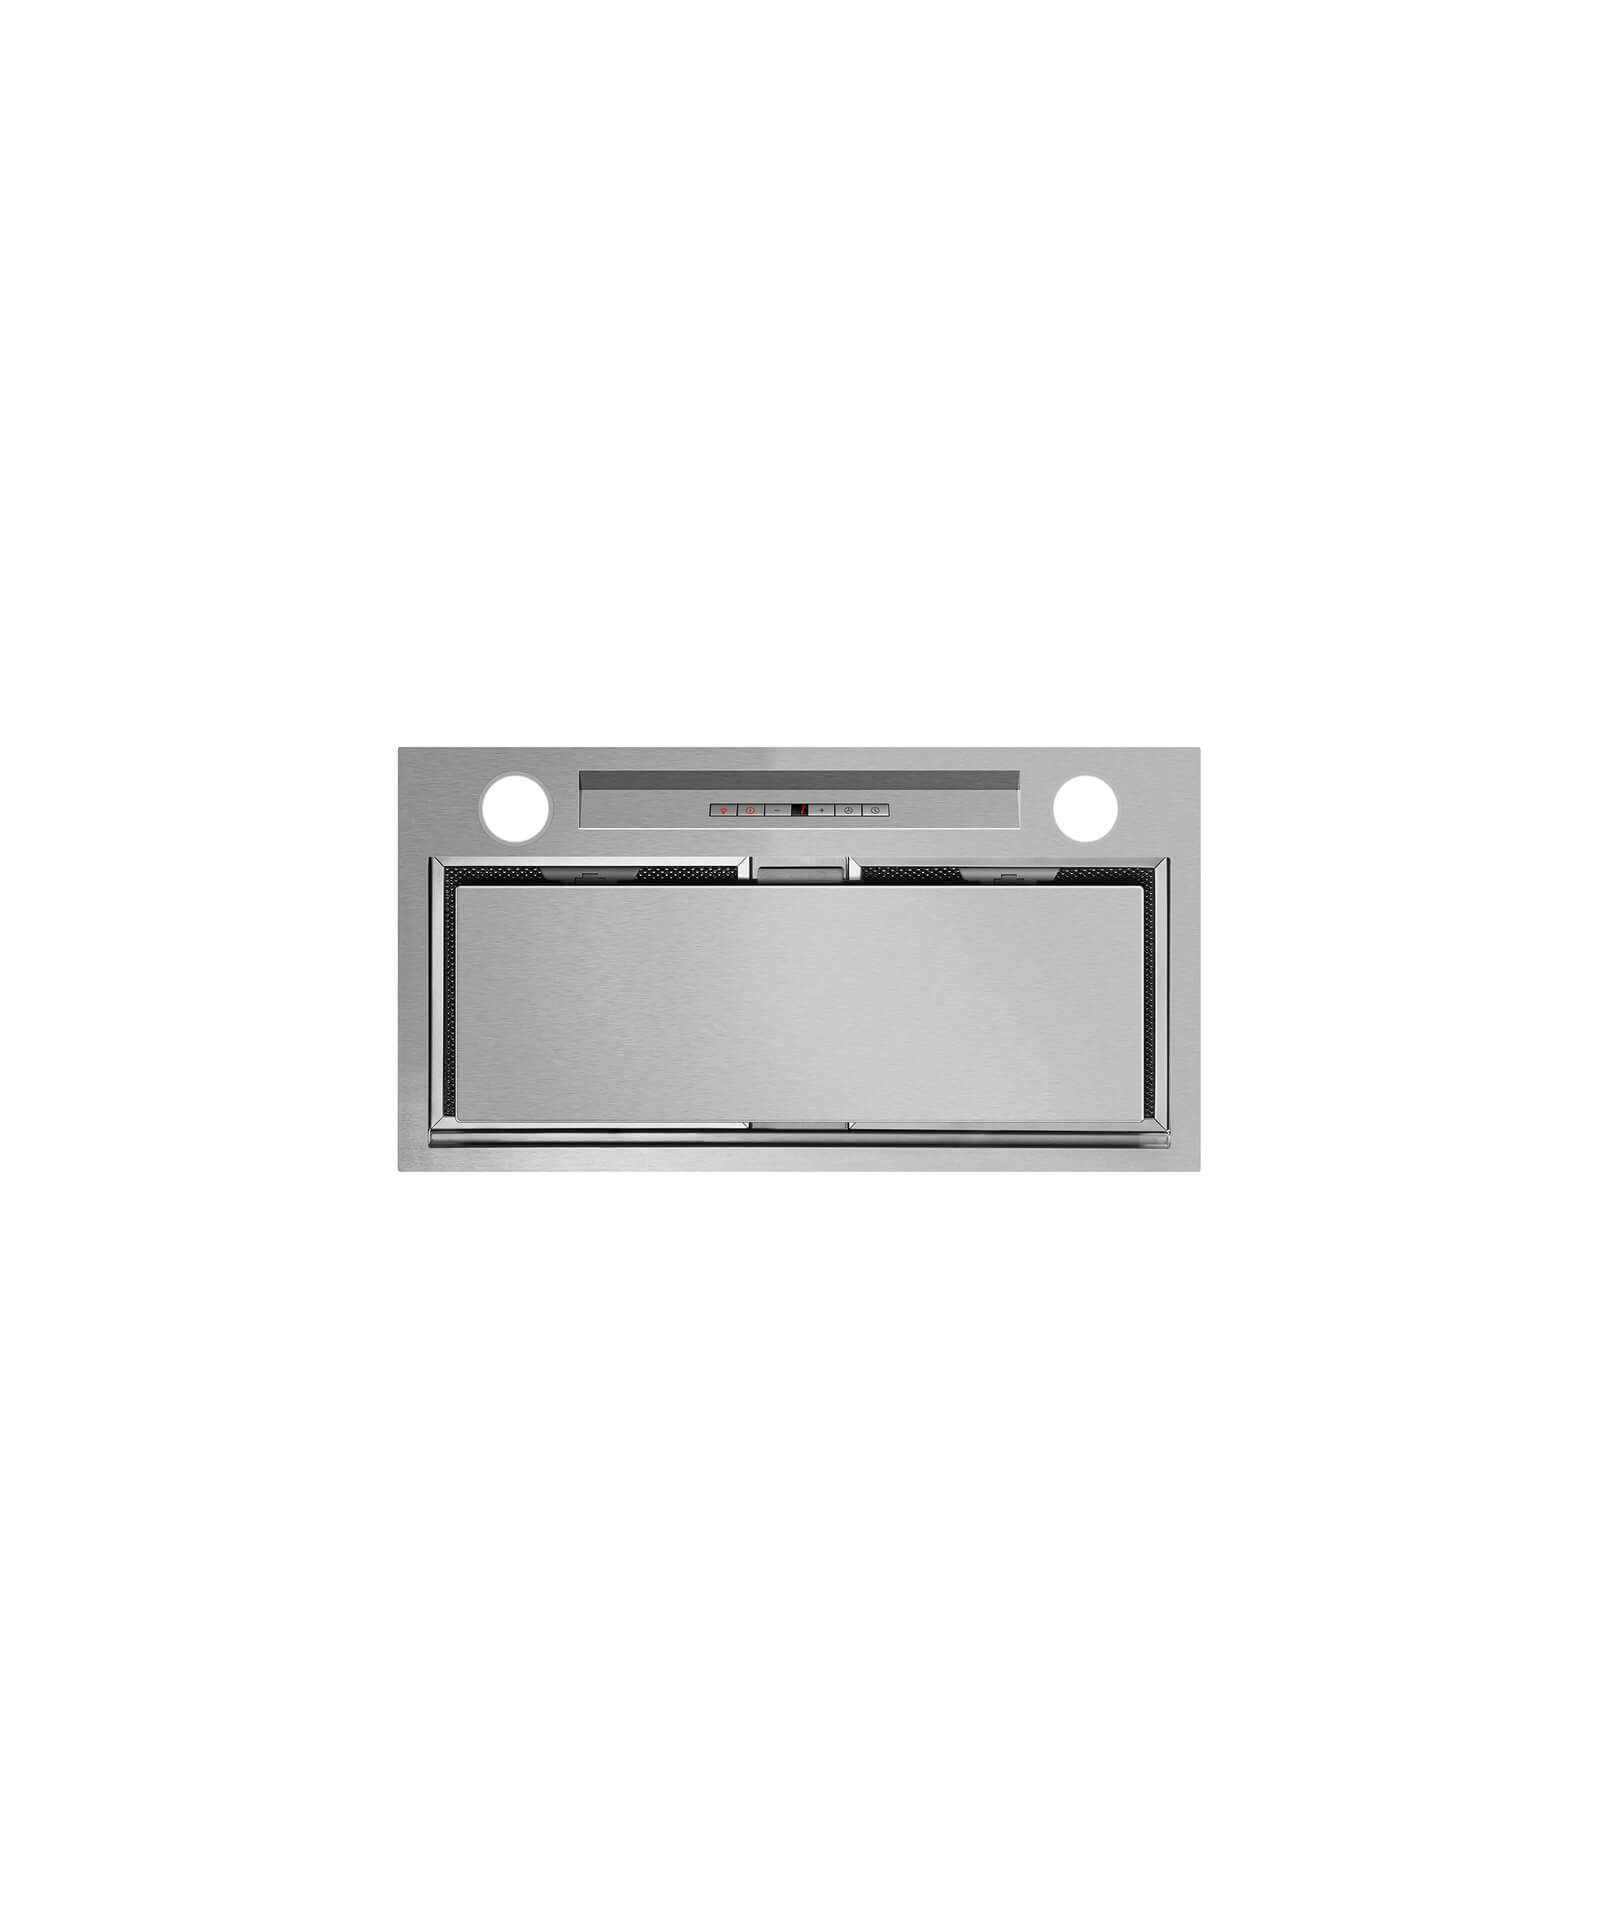 """Fisher and Paykel Ventilation Hood, 24"""", Perimeter Insert"""